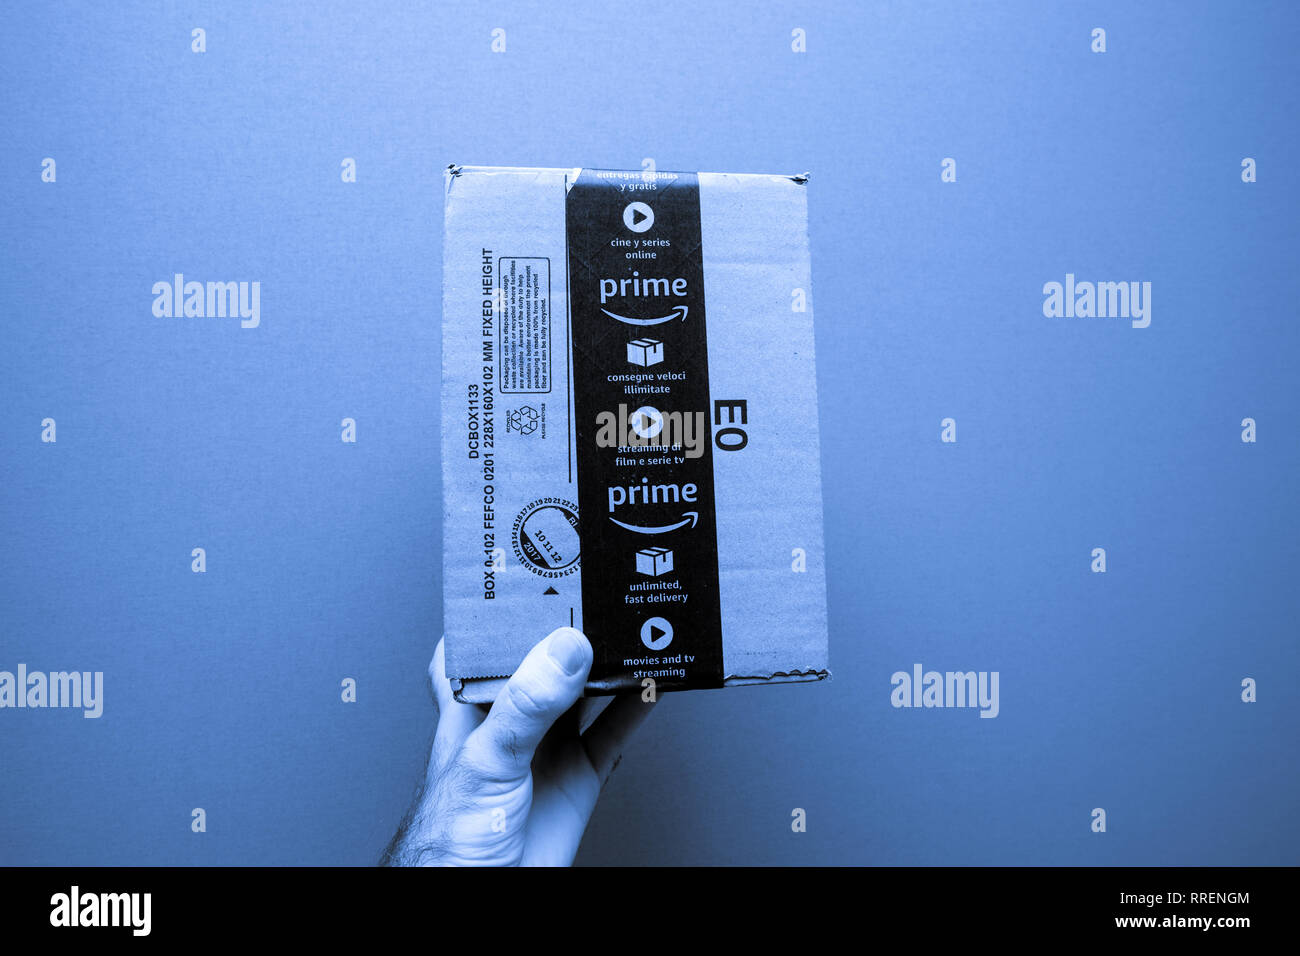 Paris, France - Ocr 21, 2017: male hand holding against blue background new freshly received Amazon Prime cardboard parcel  - Stock Image